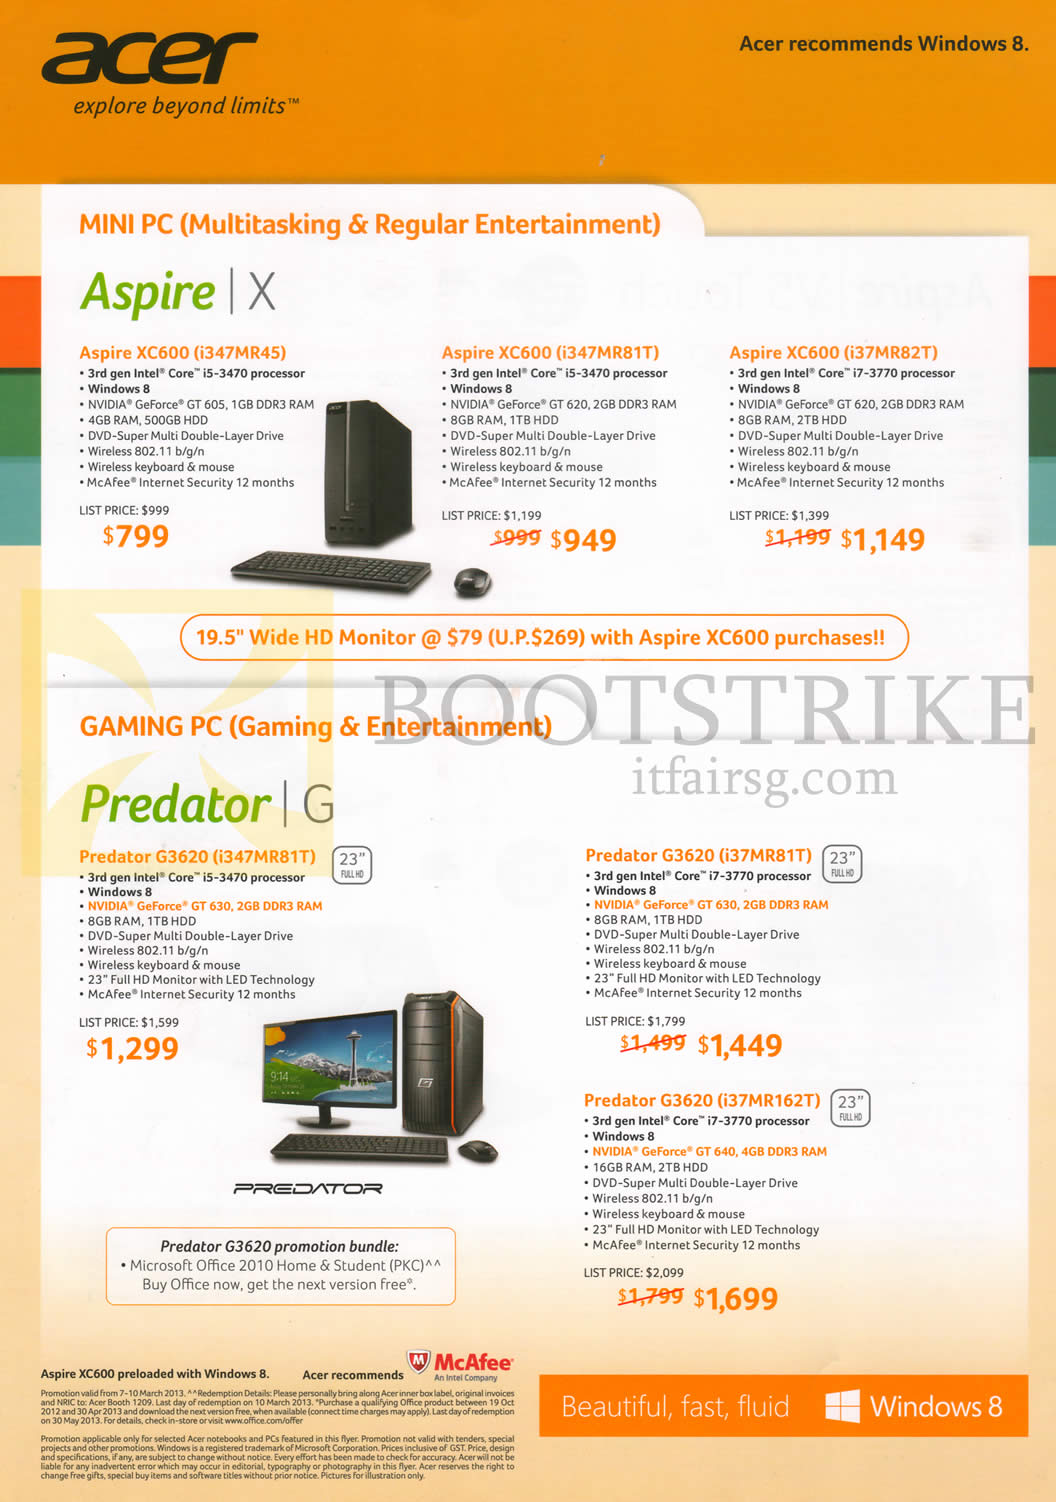 IT SHOW 2013 price list image brochure of Acer Desktop PCs, Monitors, Aspire X XC600 I347MR45, I347MR81T, I37MR82T, H226HQL, T232HL, G276HL, Predator Gaming PCs G3620 I347MR81T, I37MR81T, I37MR162T